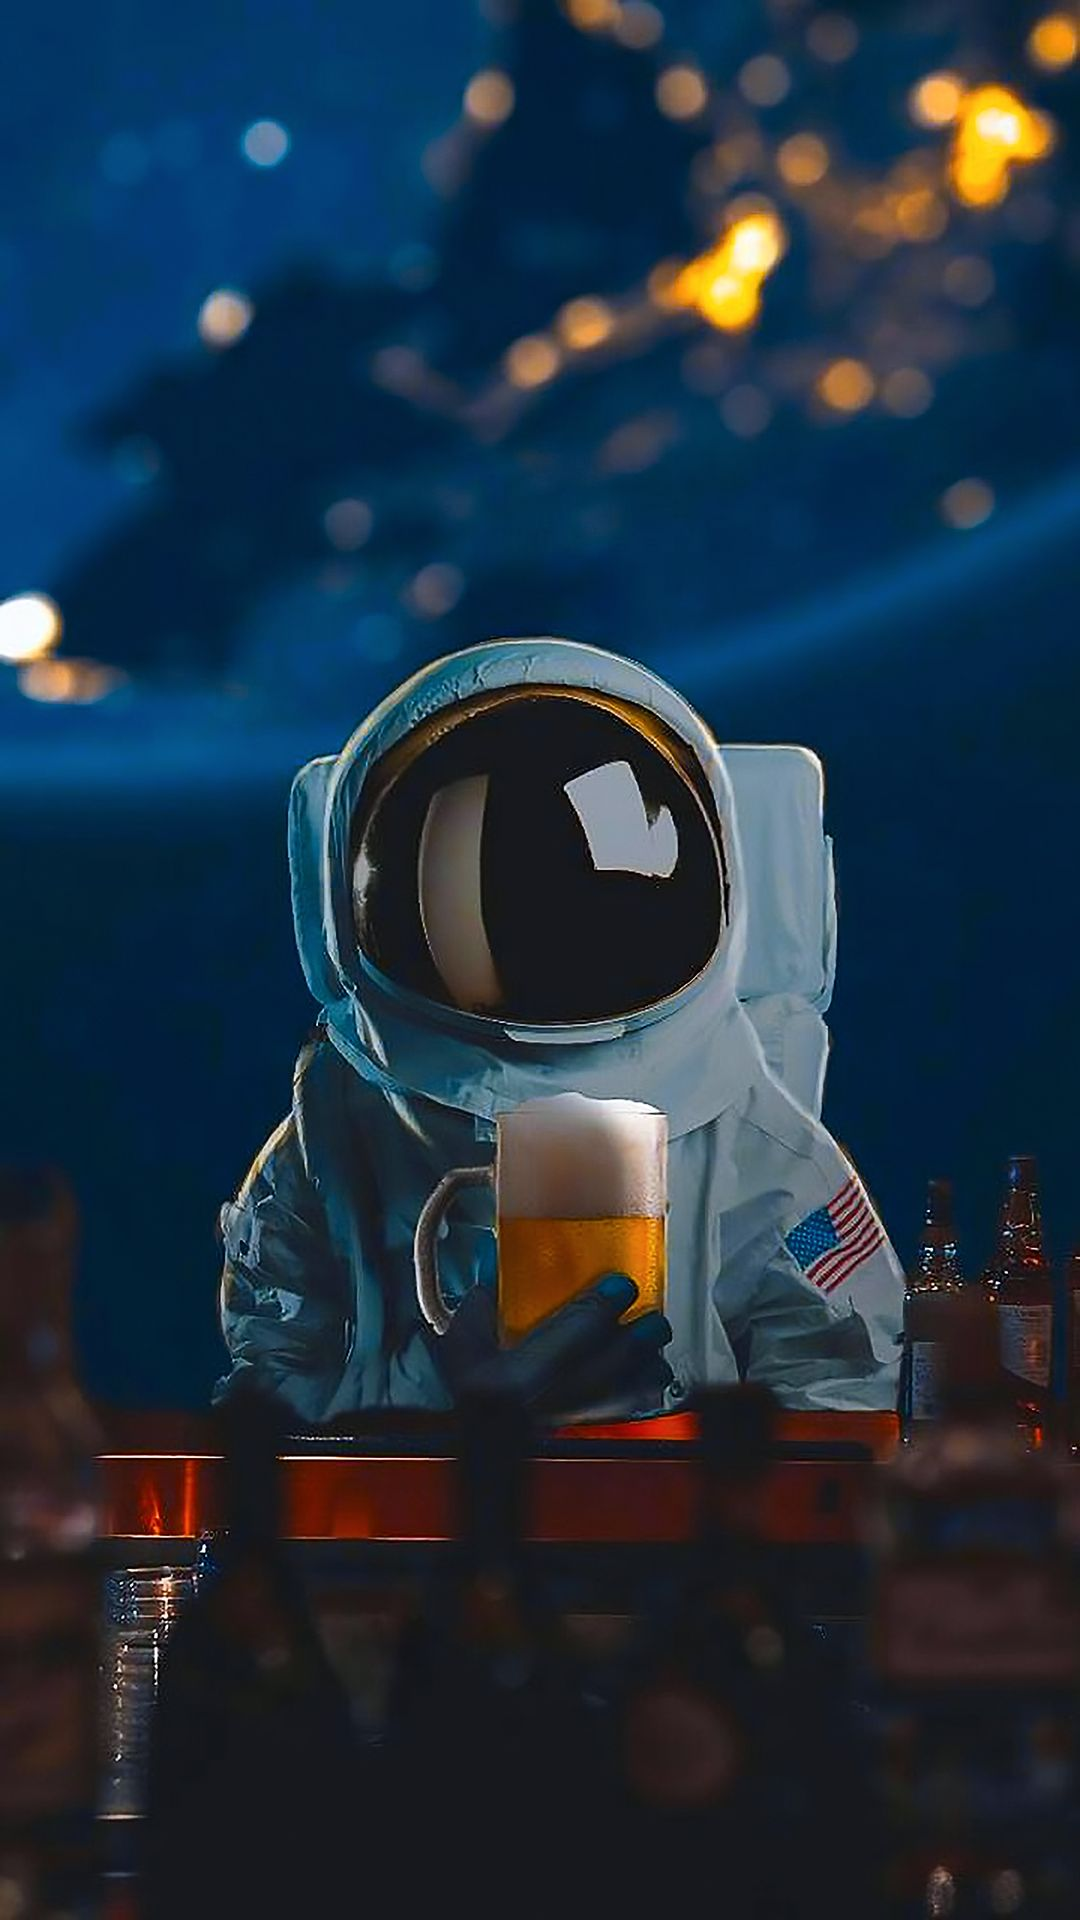 Mysterious Pilot Drinking Beer In Outer Space Astronaut